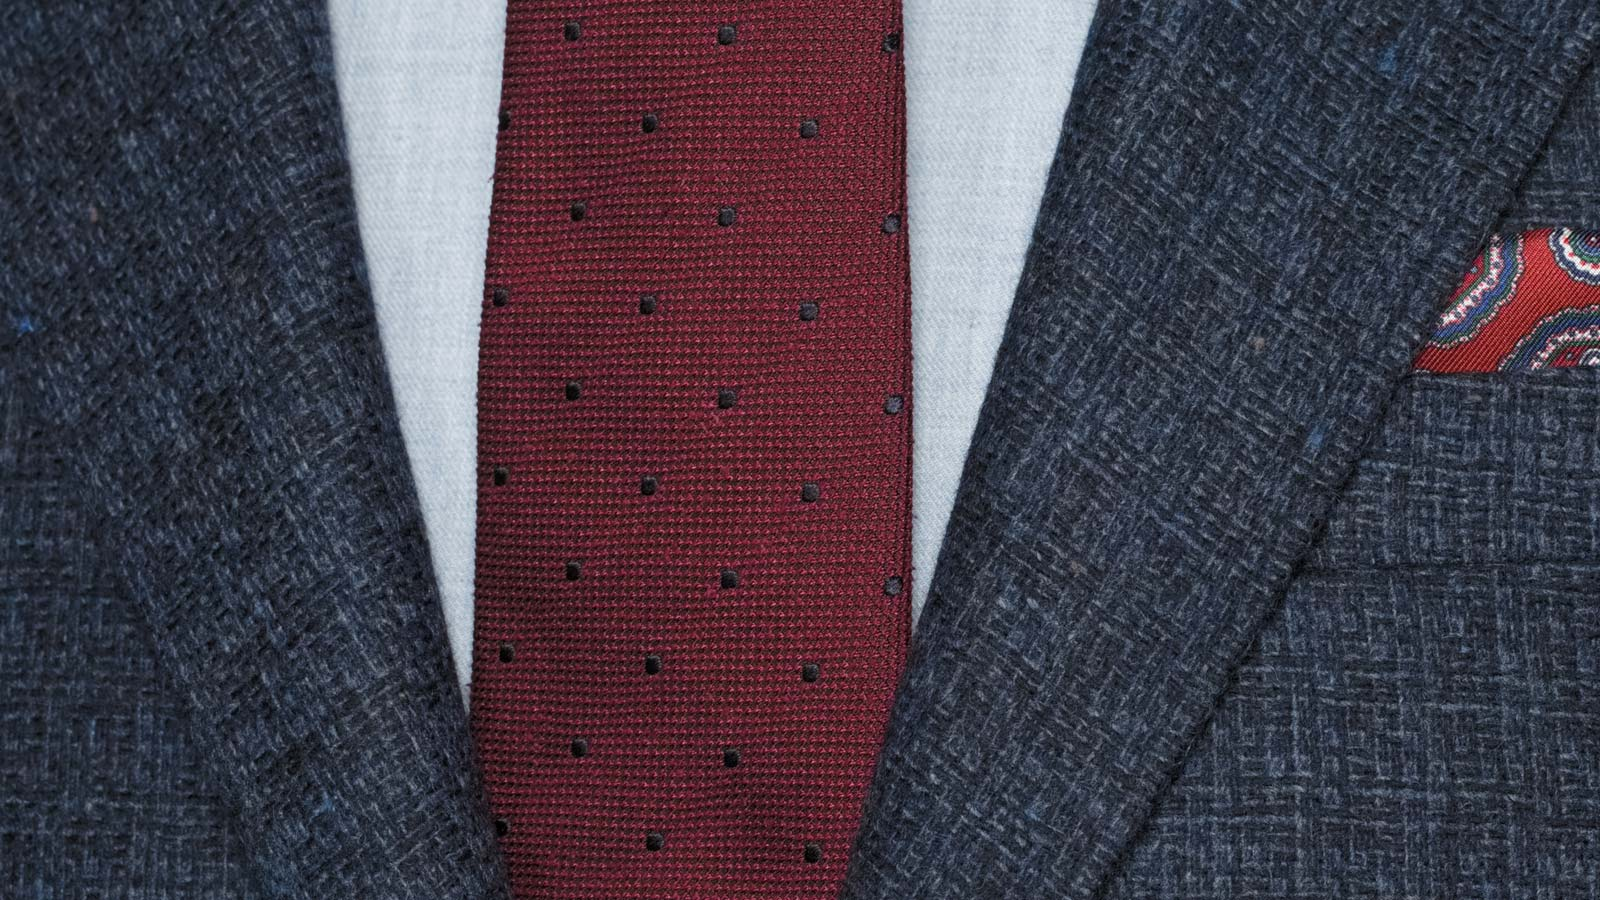 Navy Fine Check Tweed Blazer - slider image 1